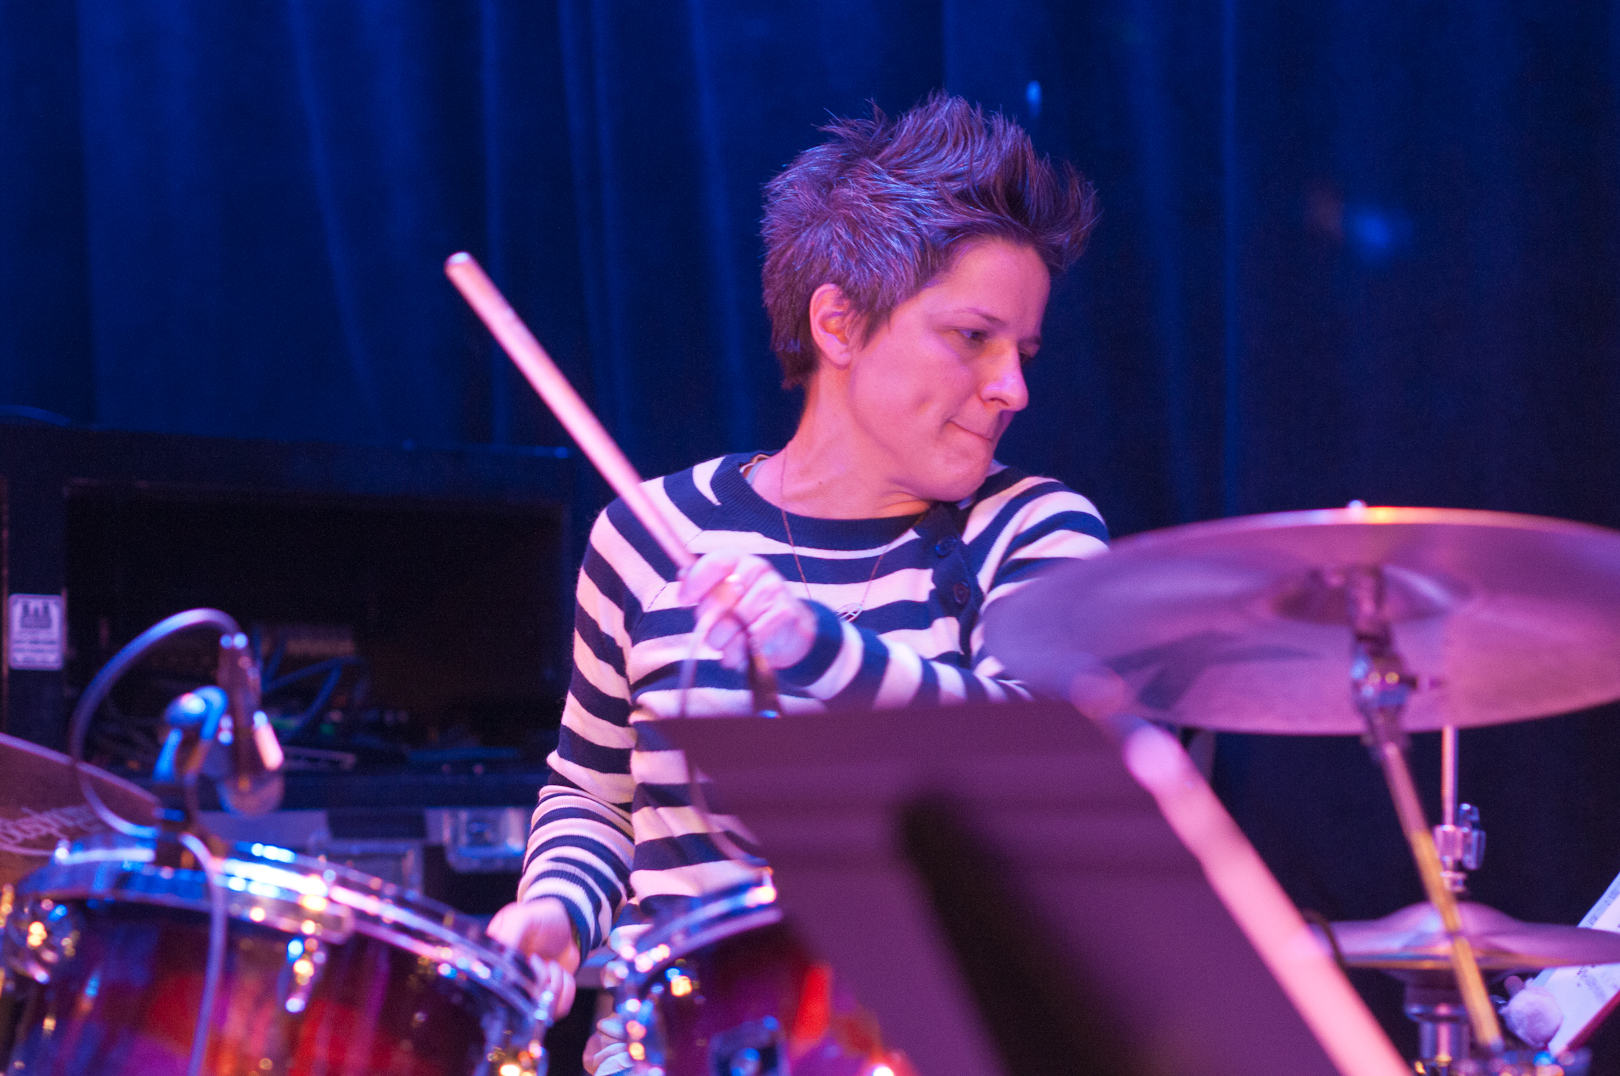 Alison Miller with the Jessica Lurie Ensemble at Winter Jazzfest 2012